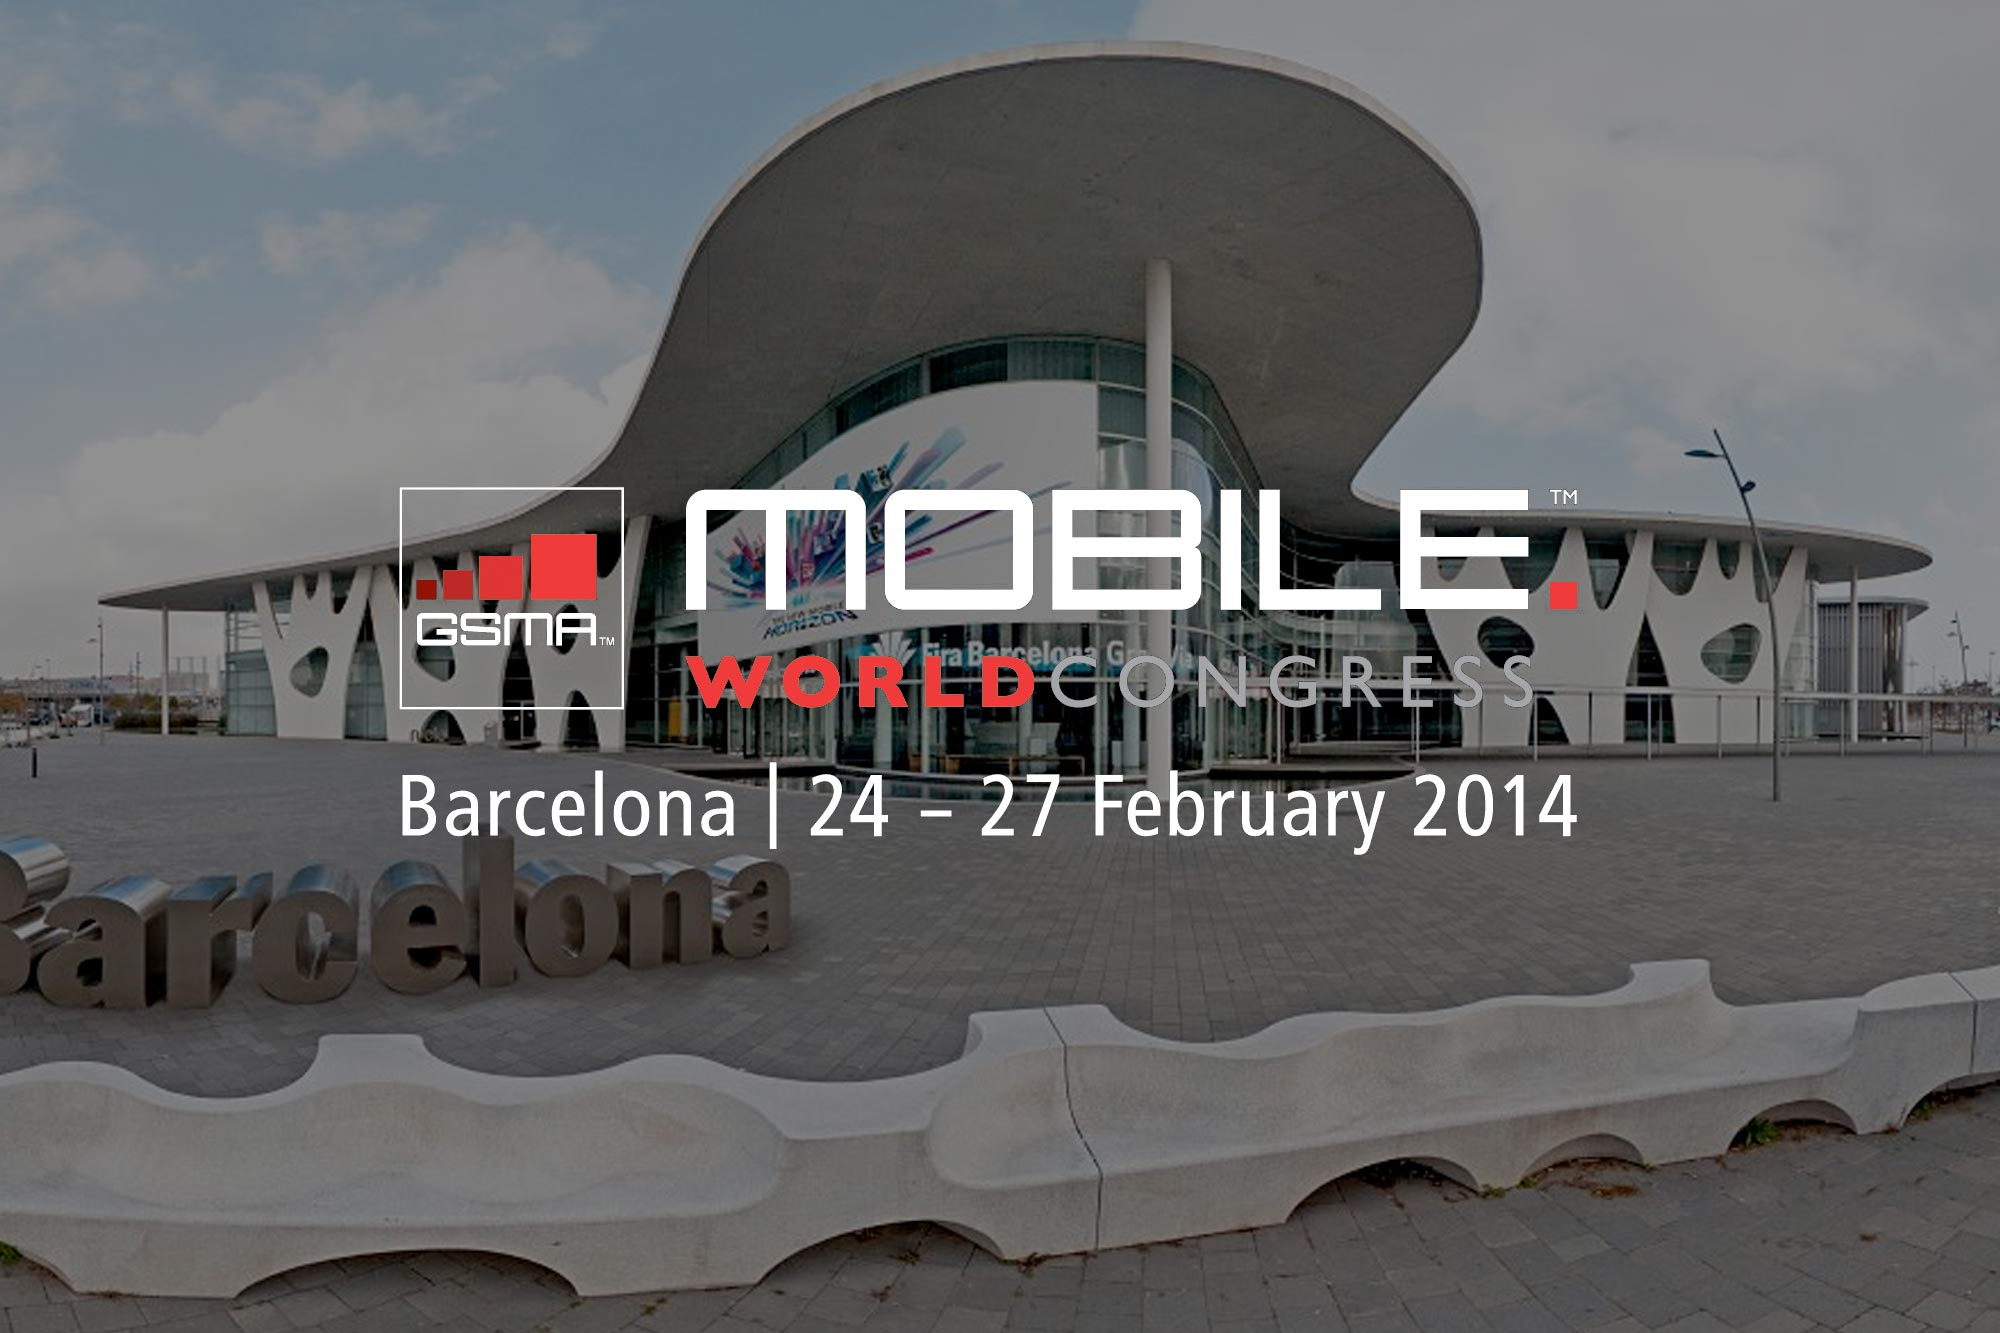 MobiWeb at MWC 2014, the world's greatest mobile event